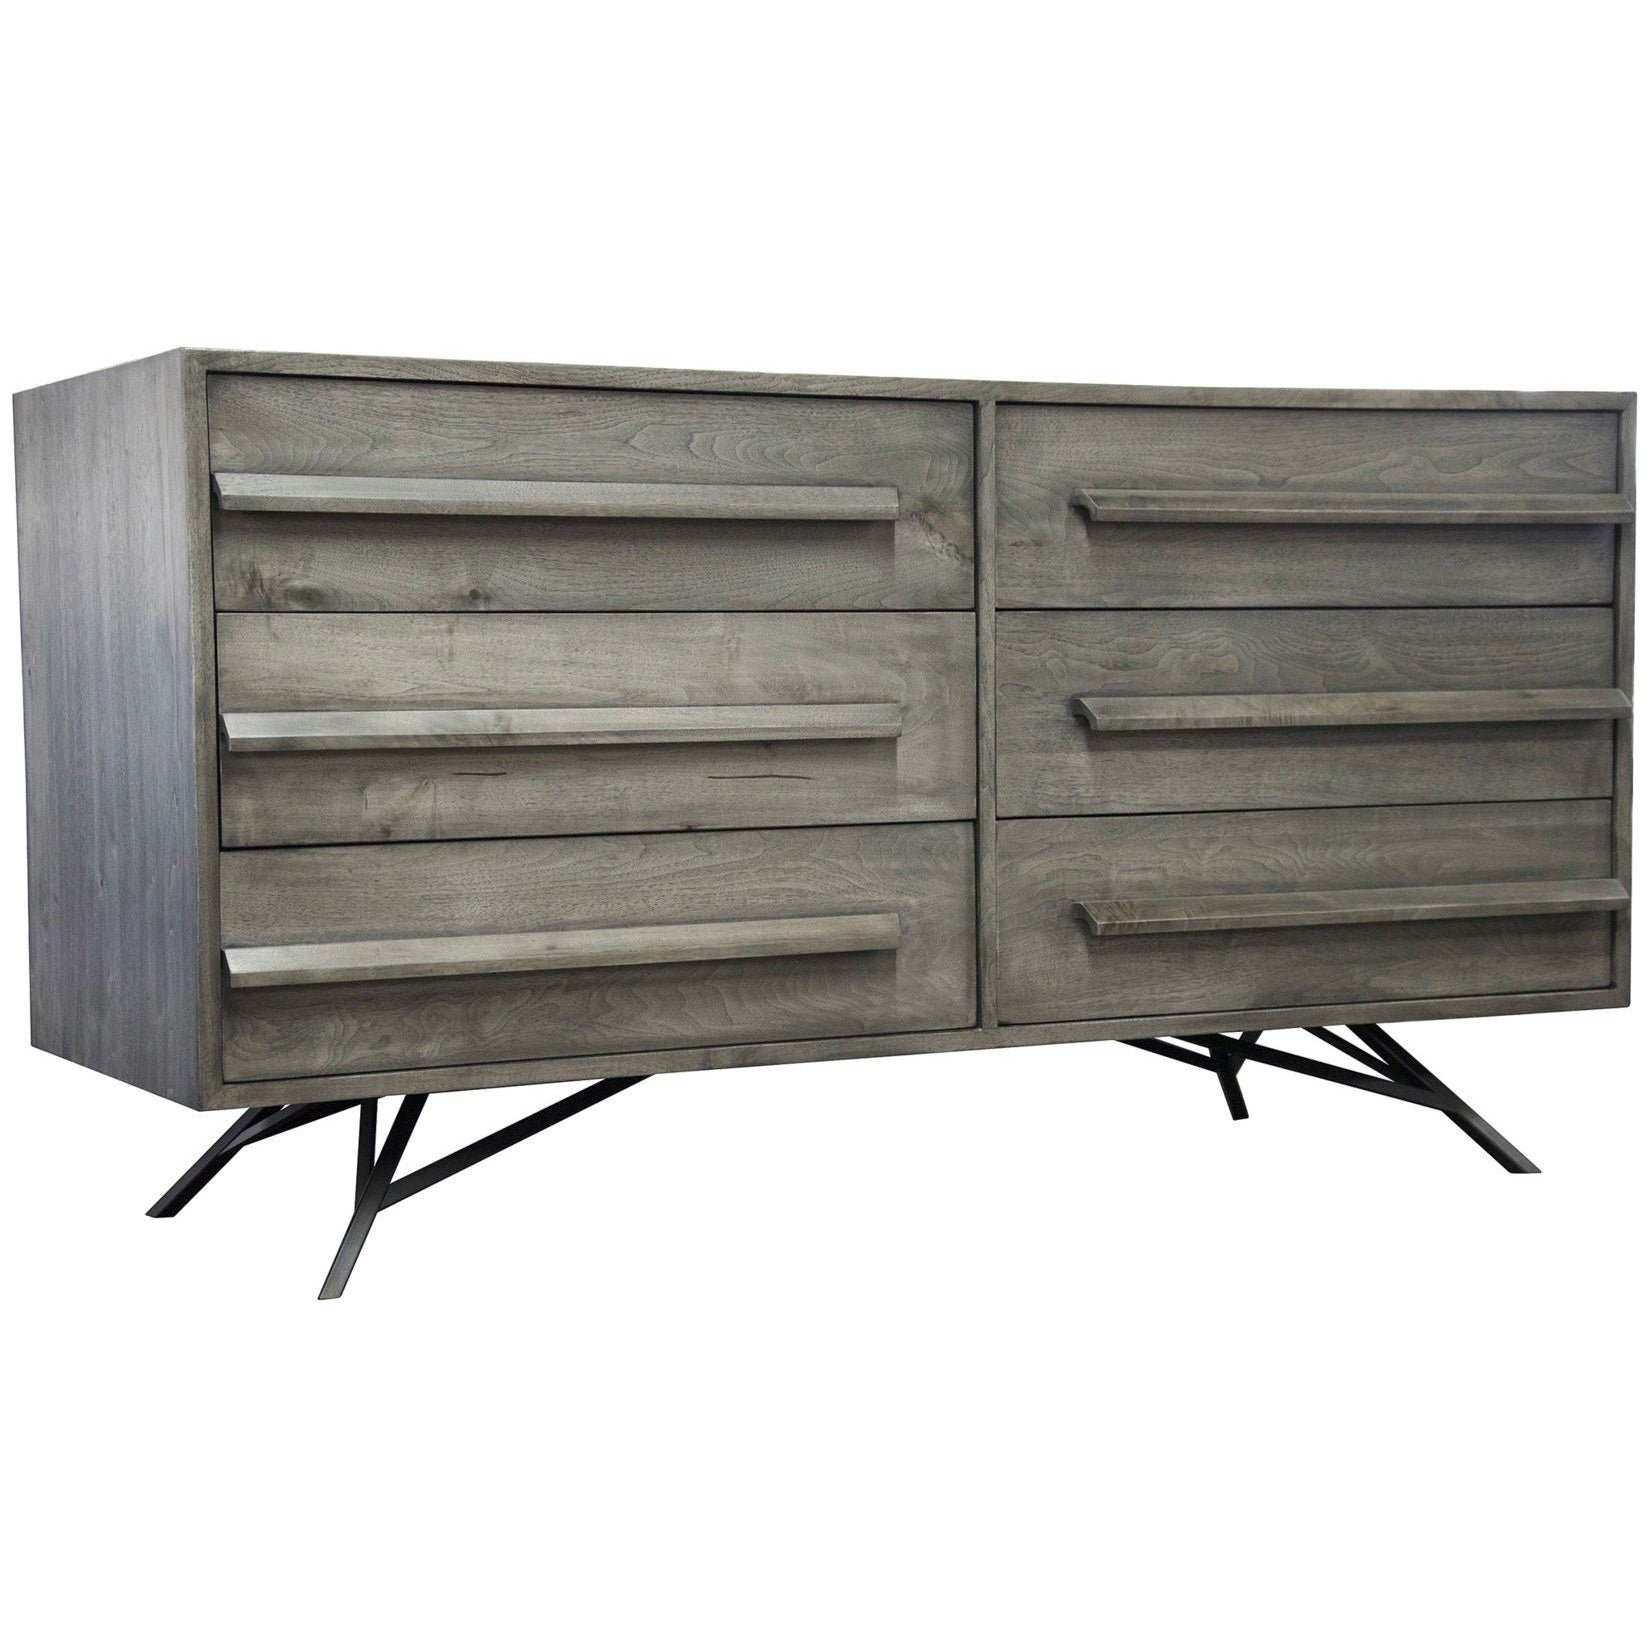 CFC Furniture Cersis Dresser